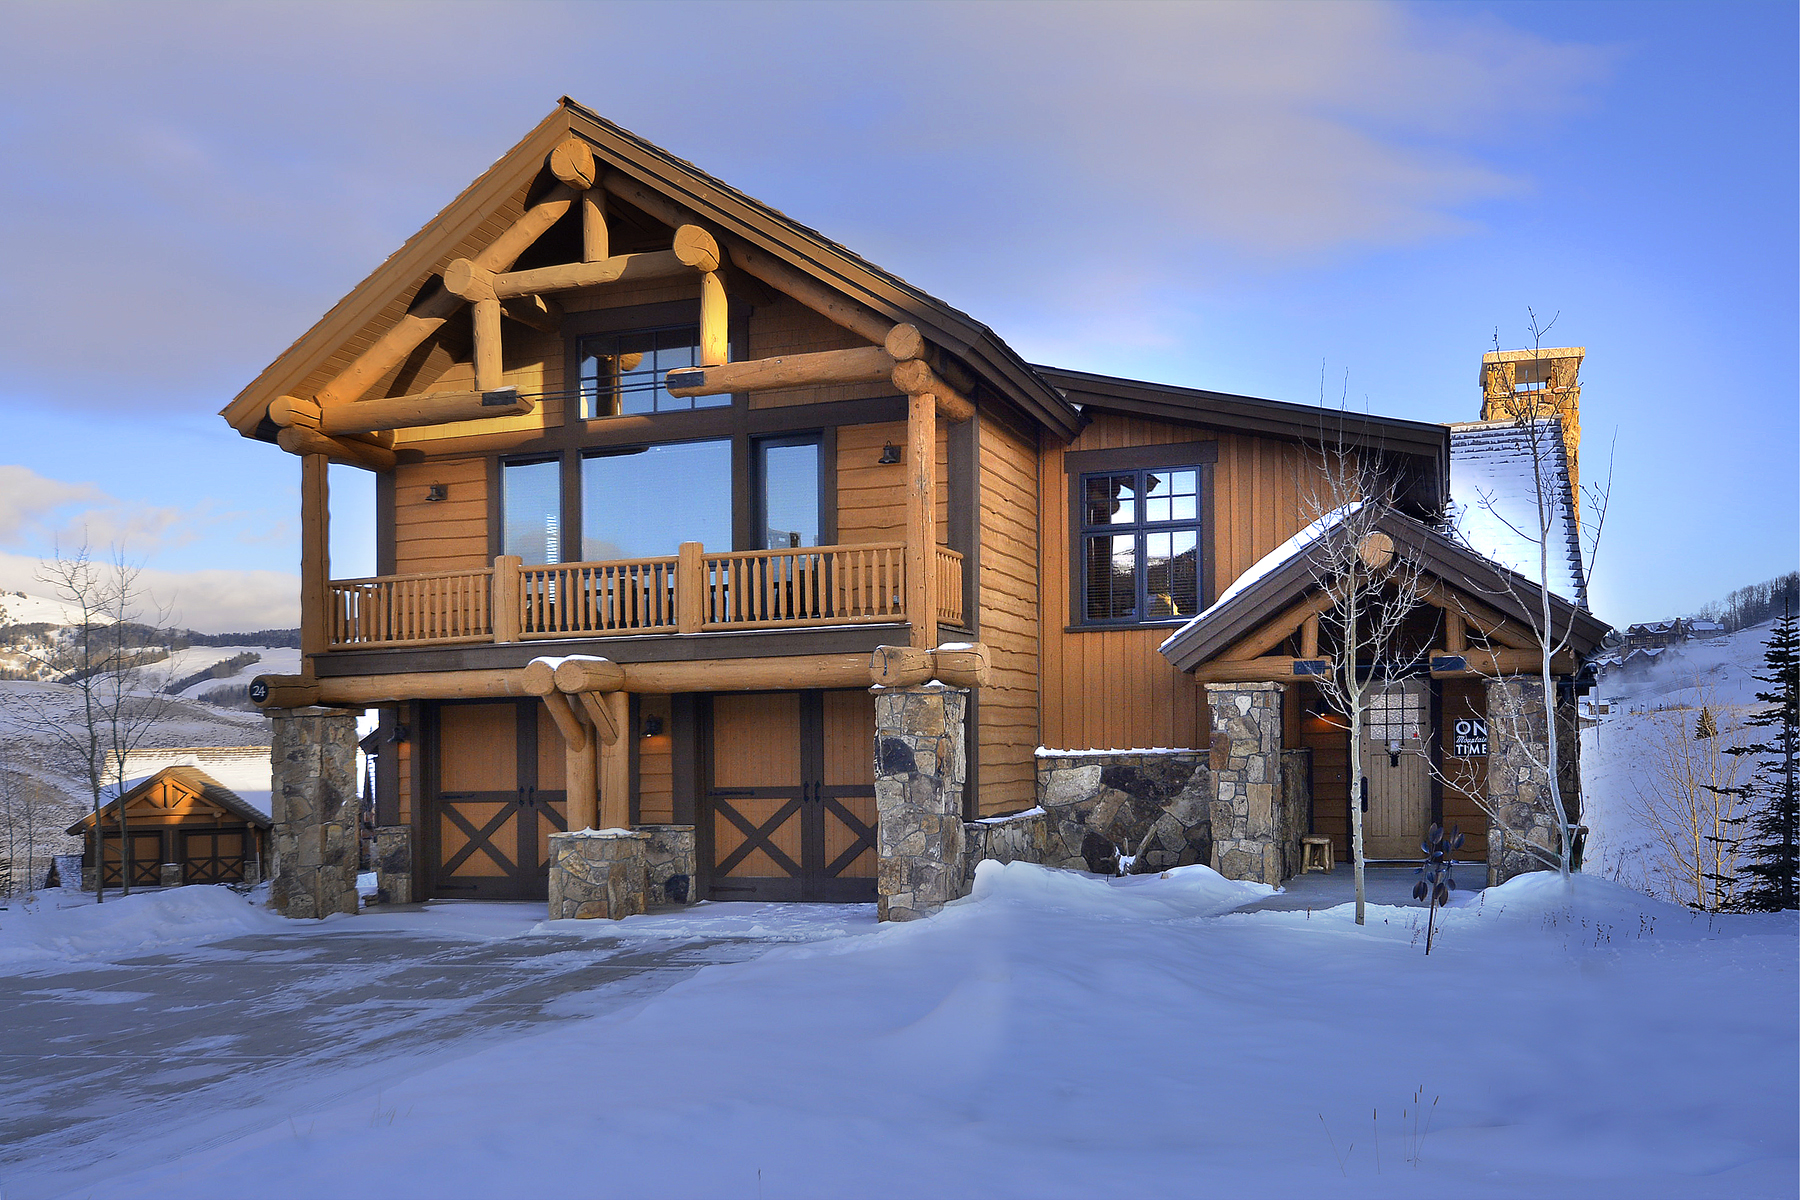 Casa Unifamiliar por un Venta en Expansive Home with Unobstructed Views 24 Appaloosa Road Mount Crested Butte, Colorado, 81225 Estados Unidos